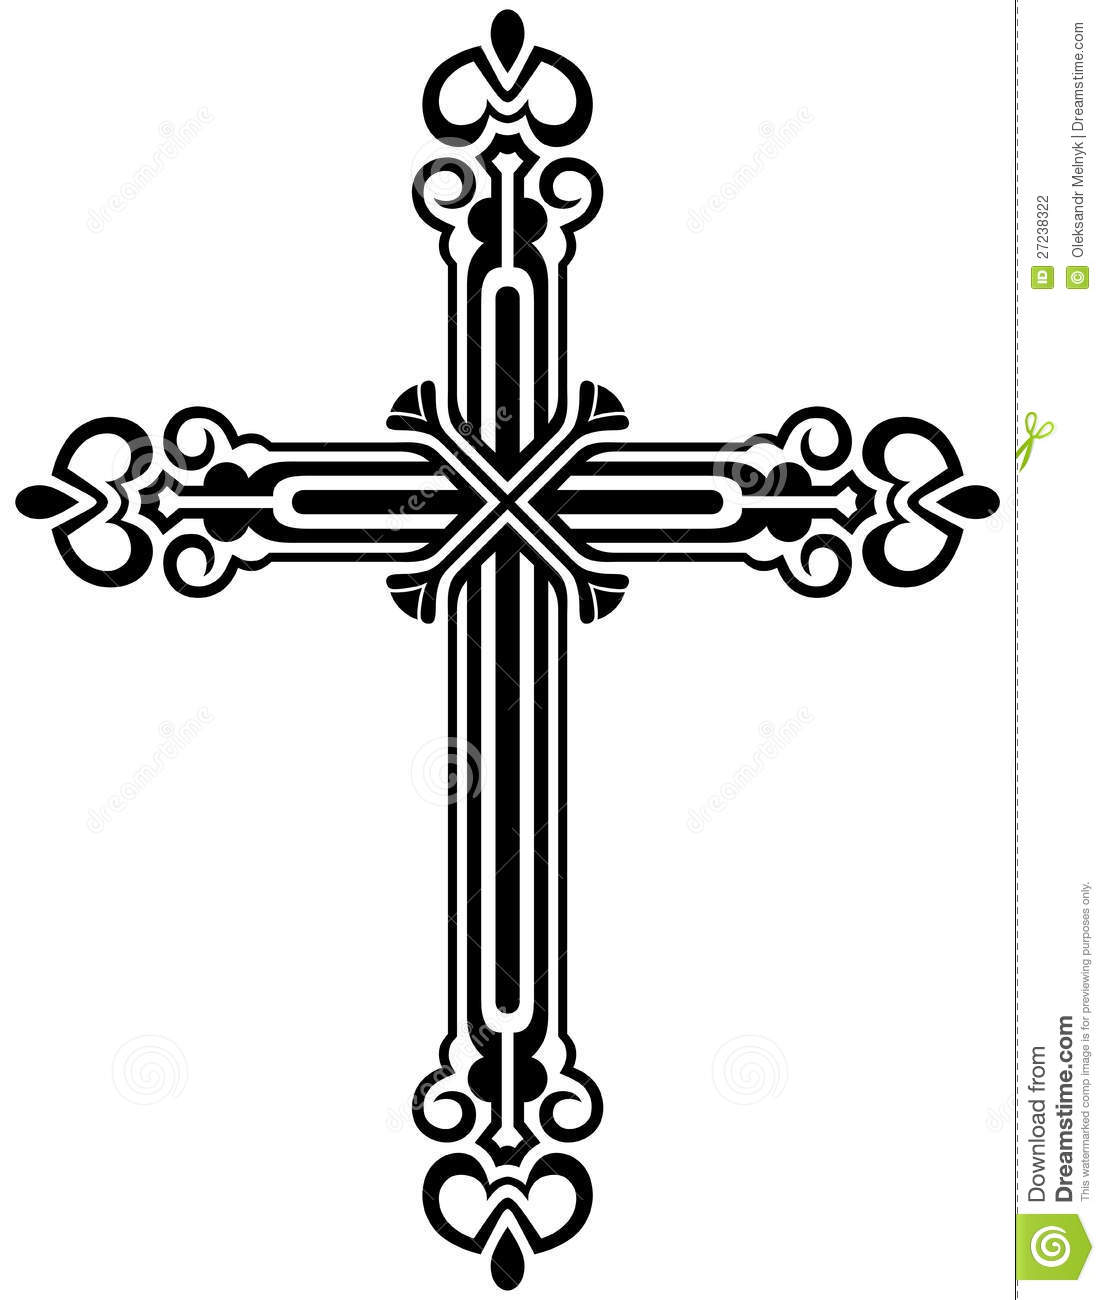 Stock Photography Religious Cross Design Collection Image27238322 additionally Stock Image Human Posterior Oblique Spine Image3855391 together with Royalty Free Stock Photo Bee Border Frame Scalable Vectorial Image Representing Isolated White Image34493795 furthermore Royalty Free Stock Photos Team Leader Illustration Wit His Around White Background Image32686758 together with Stock Images Moustache Sketch Image22724744. on united states map vector clip art